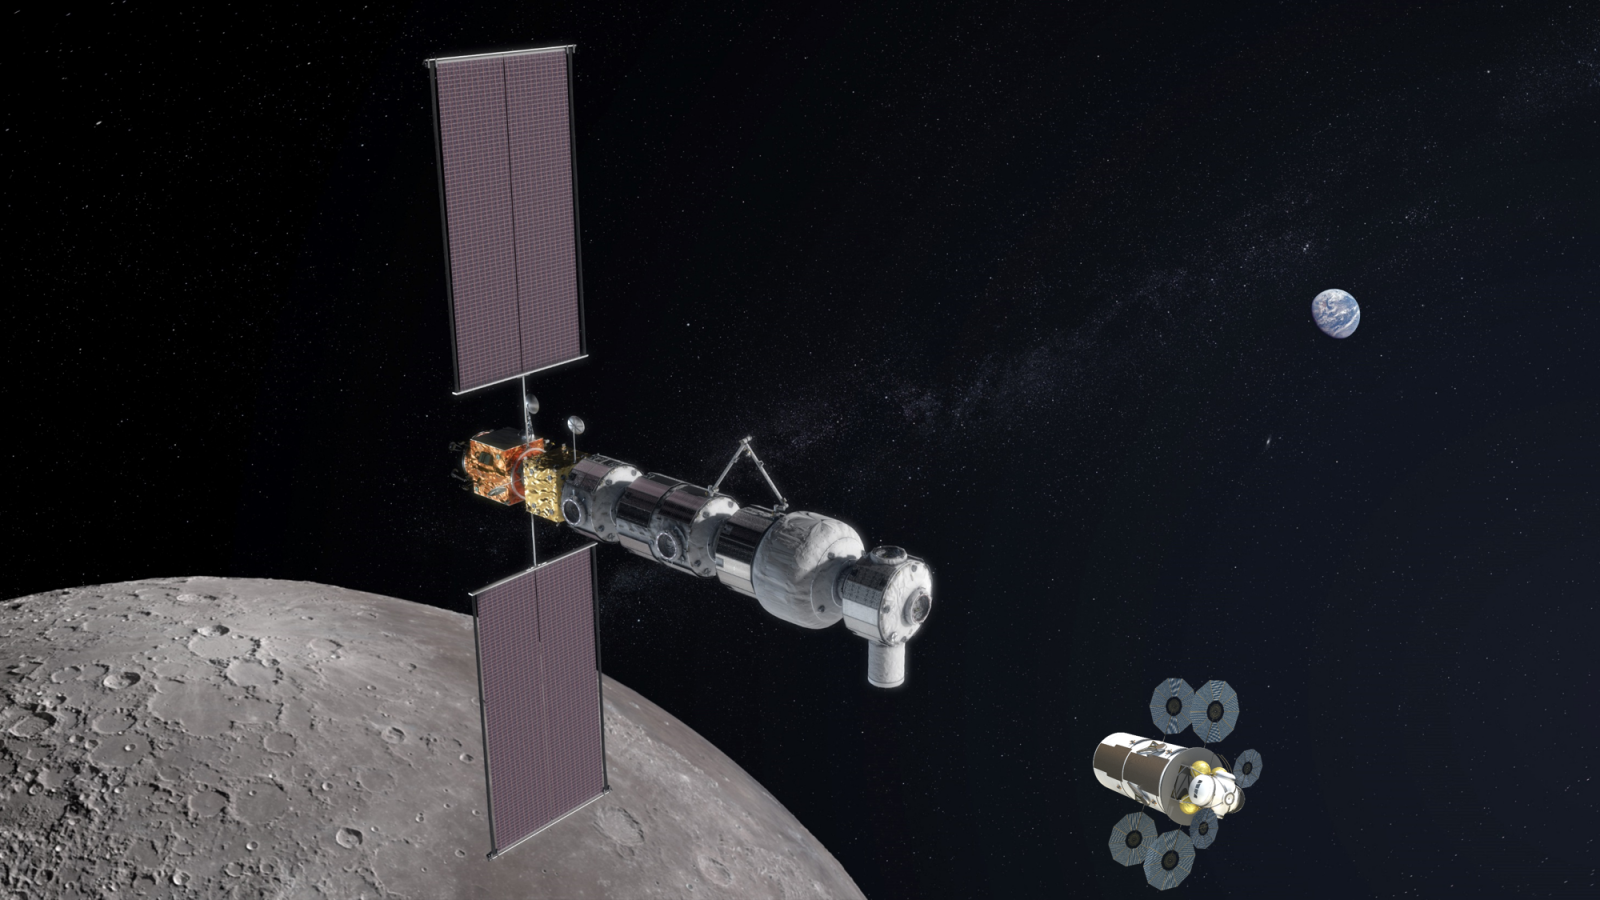 NASA wants US-based firms to design human lunar landers for Moon